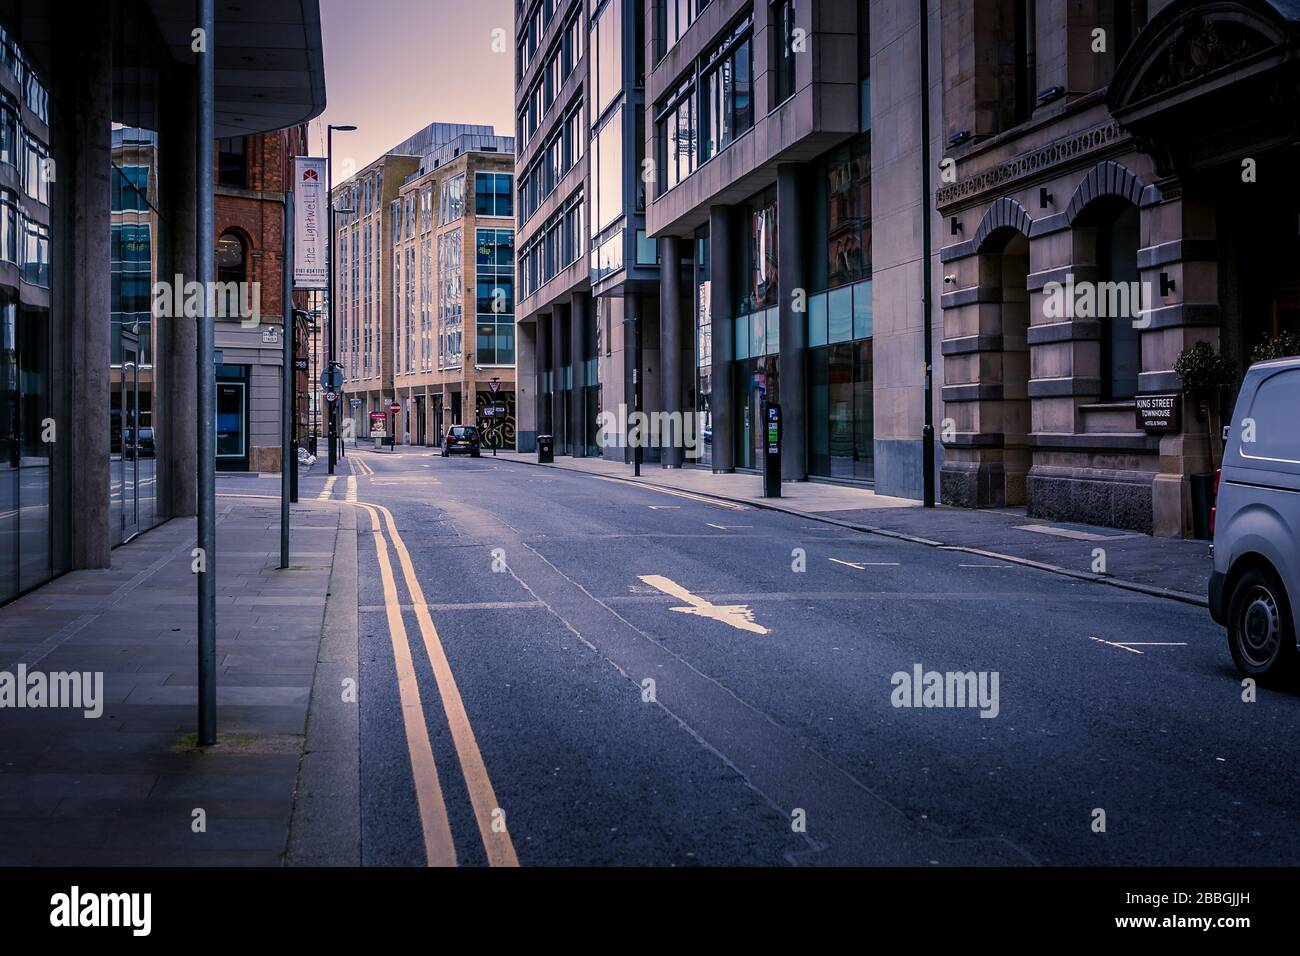 Booth Street, Manchester, United Kingdom. Empty streets during Coronavirus outbreak, March 2020. Stock Photo